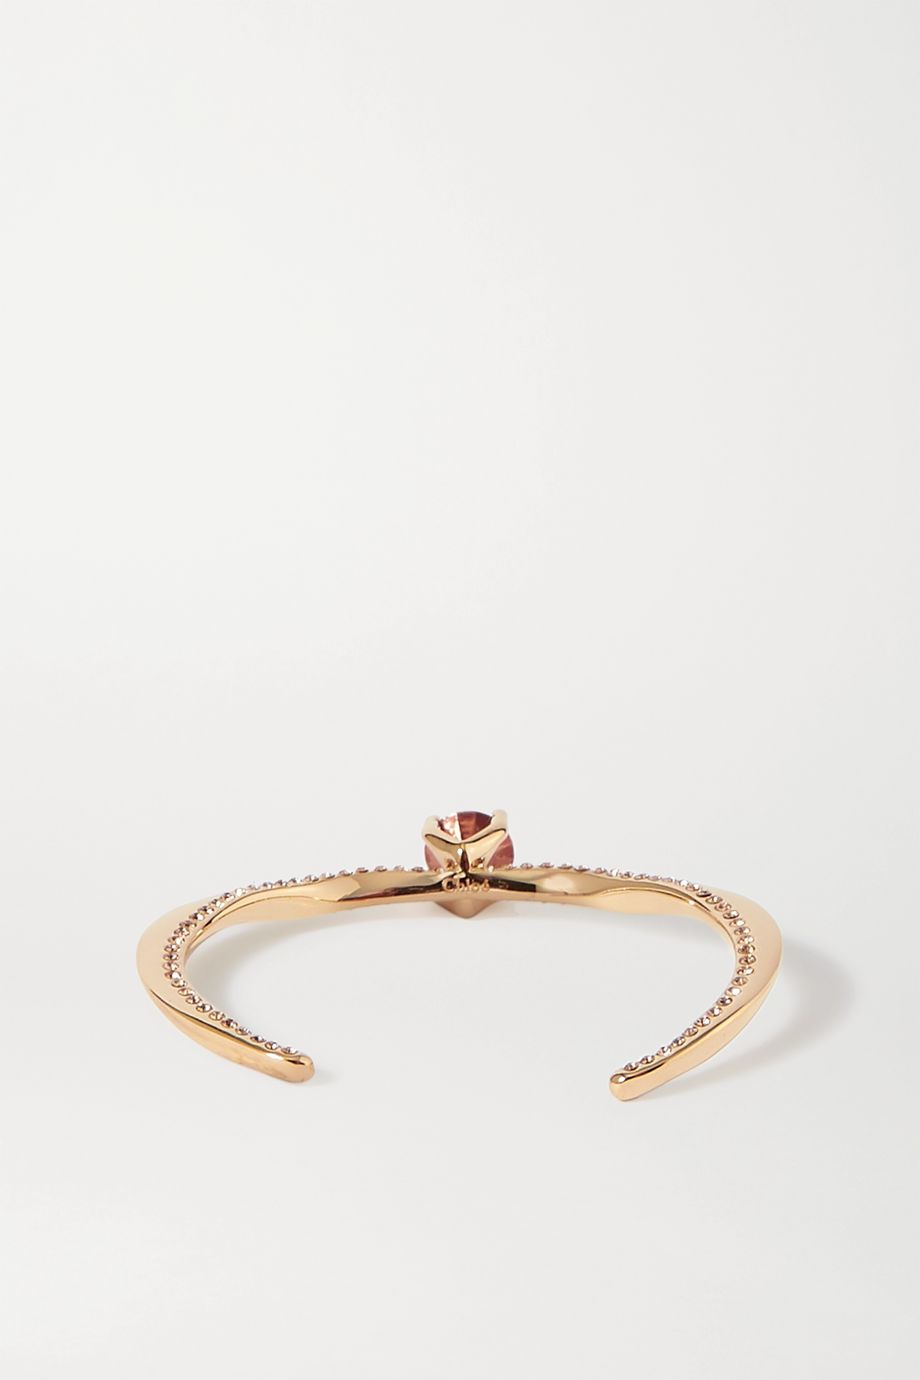 Chloé Denise gold-plated crystal cuff